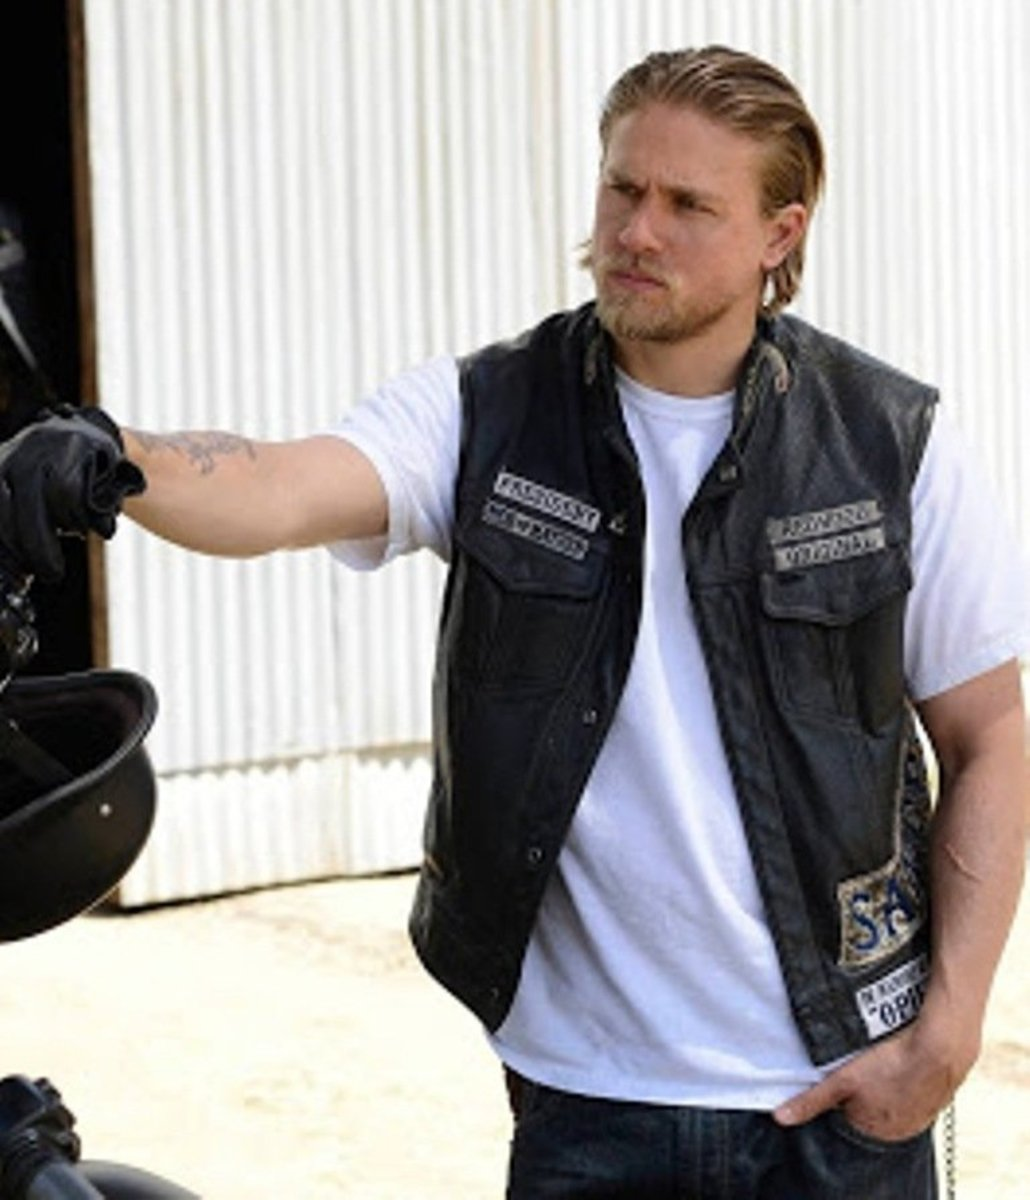 DIY Jax Teller Halloween Costume